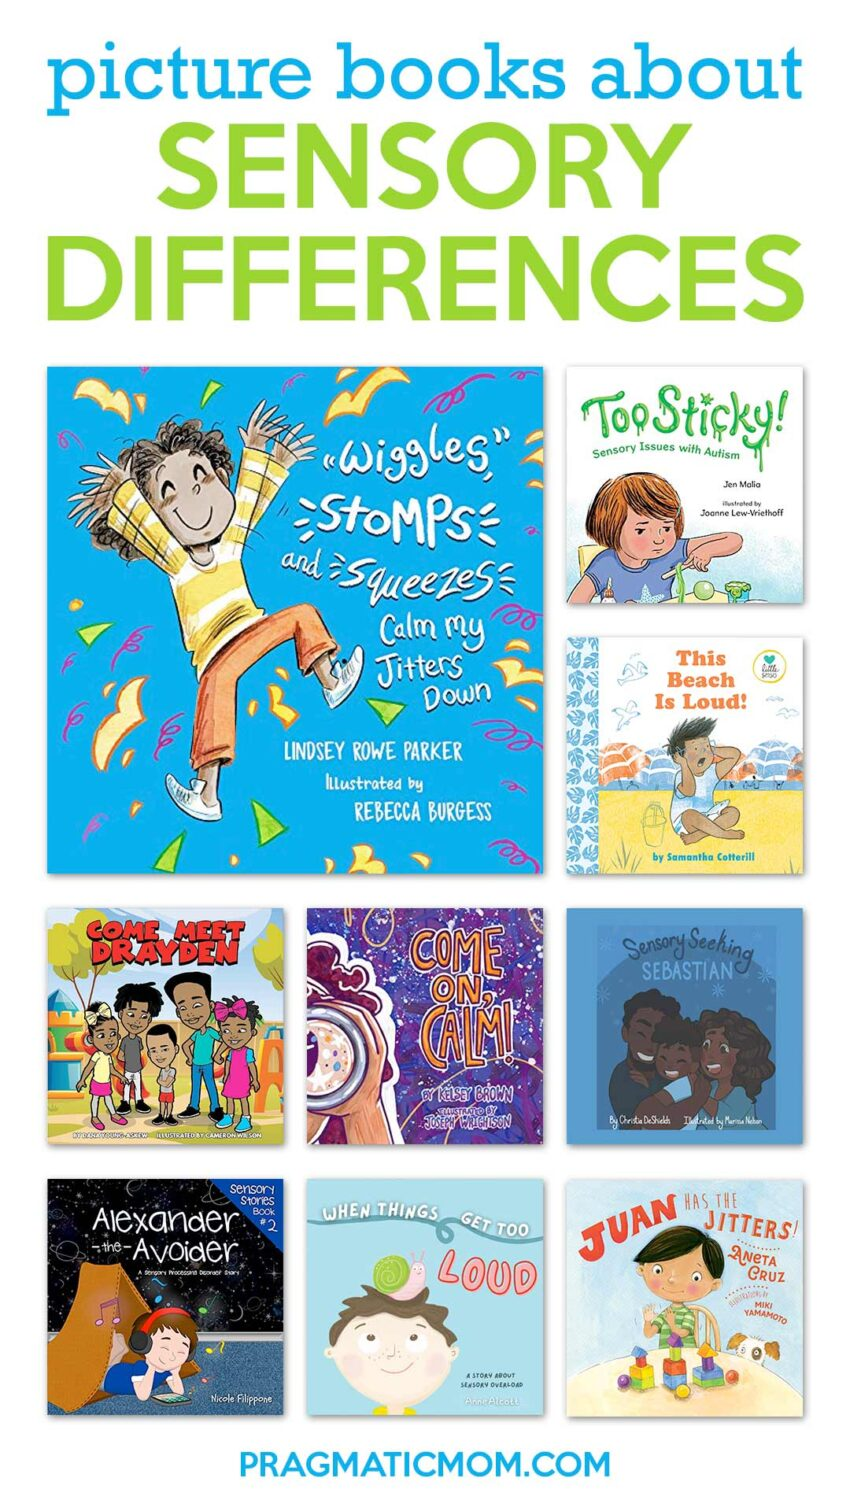 Picture Books about Sensory Differences